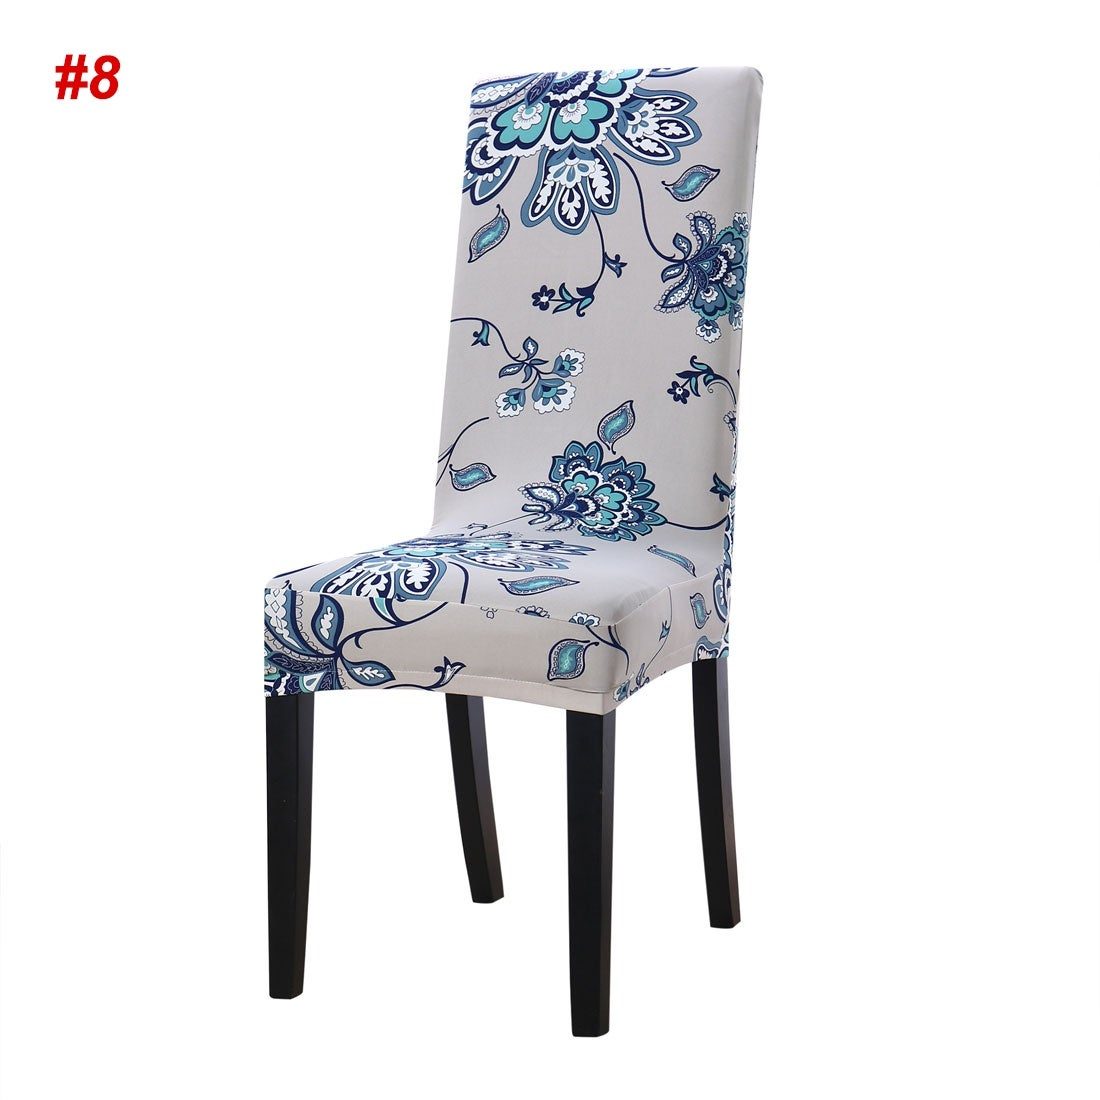 Magnificent Buy Chair Covers Slipcovers Online At Overstock Our Best Lamtechconsult Wood Chair Design Ideas Lamtechconsultcom